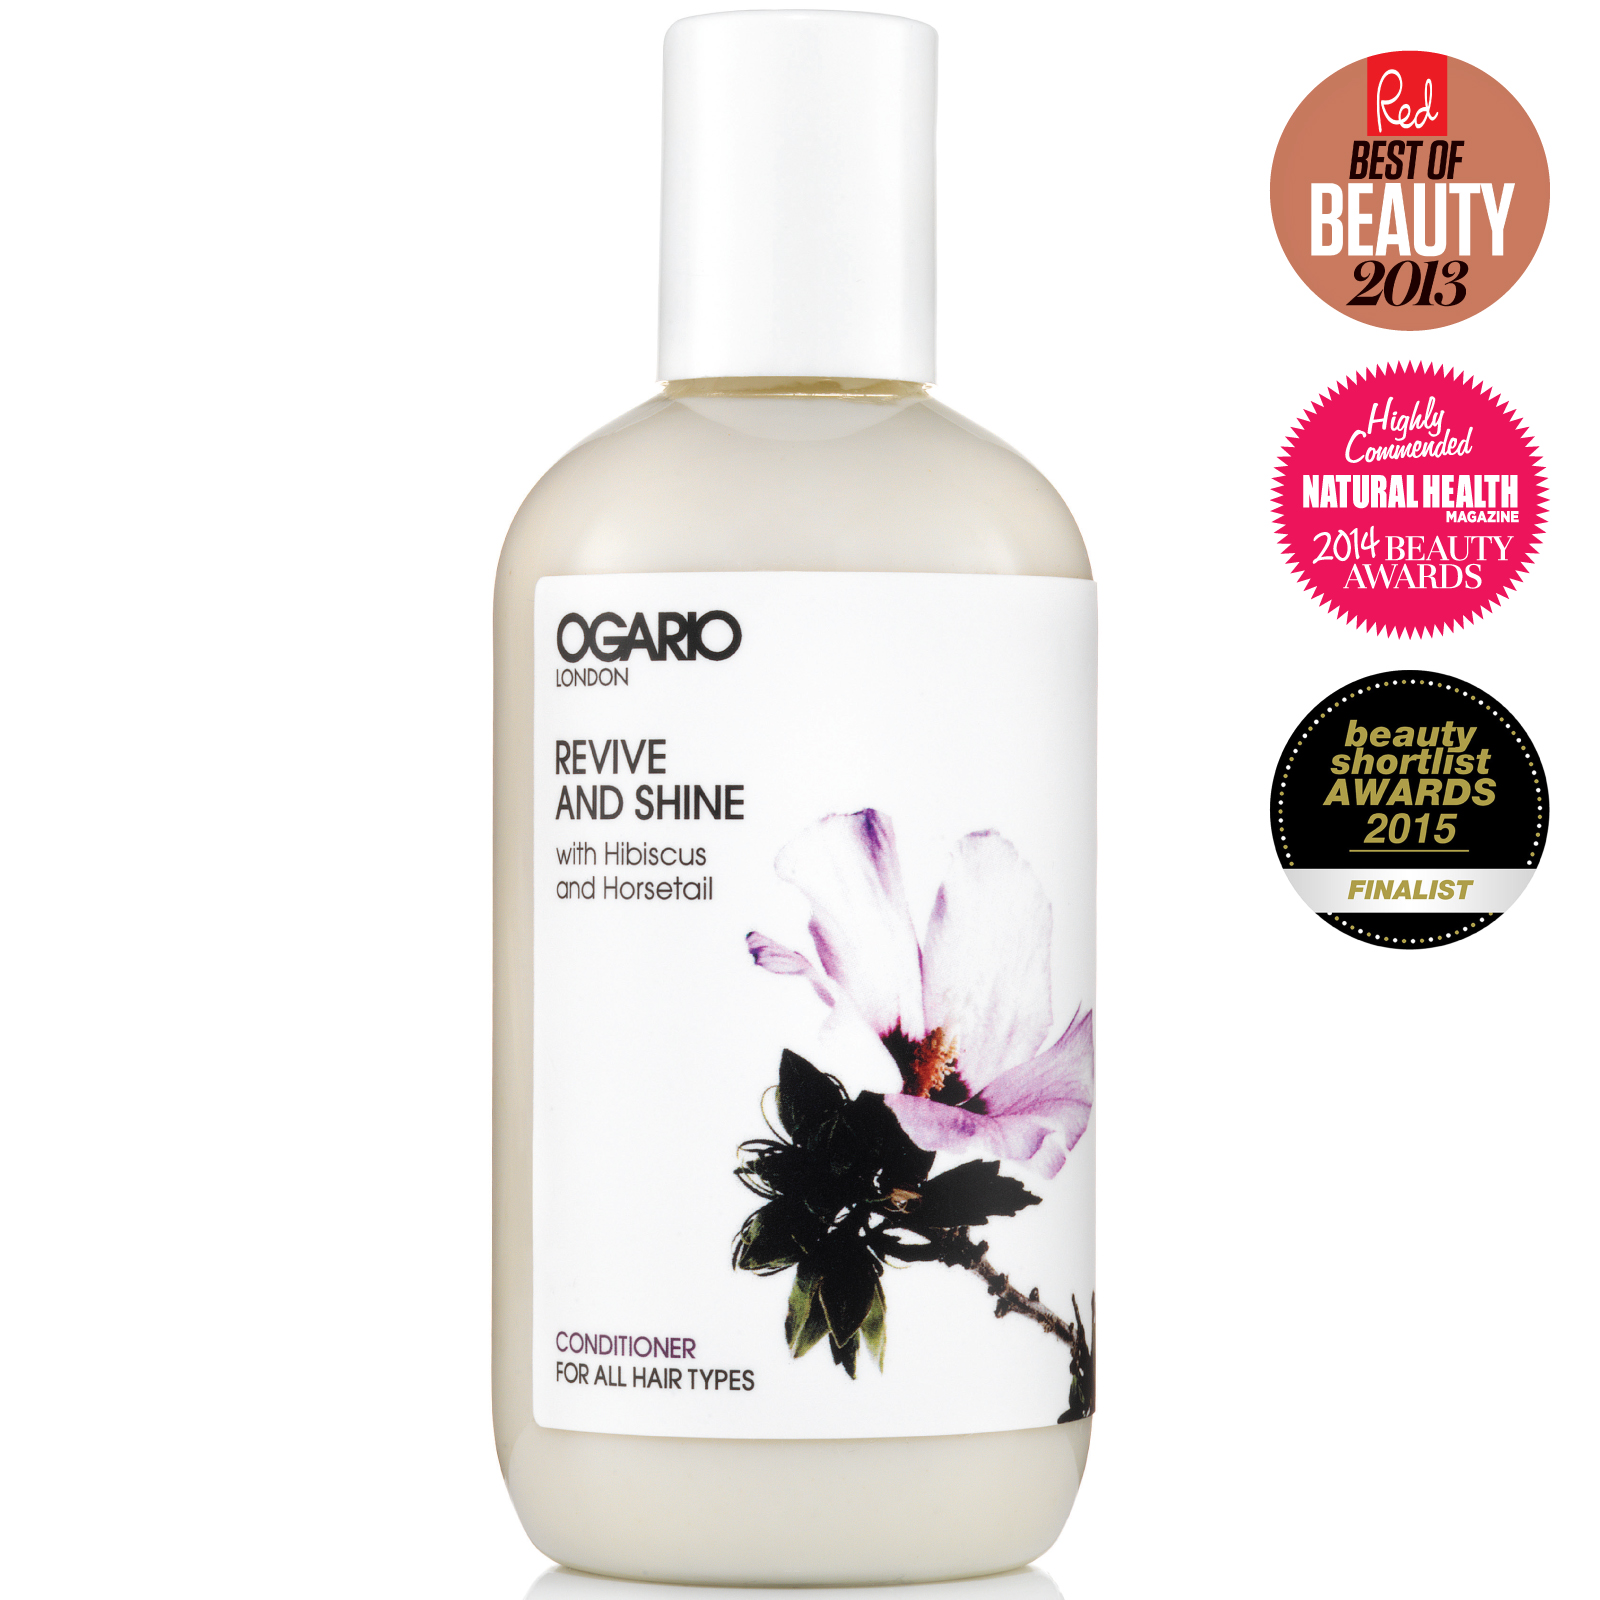 OGARIO Revive and Shine Conditioner; Detangles and Shines